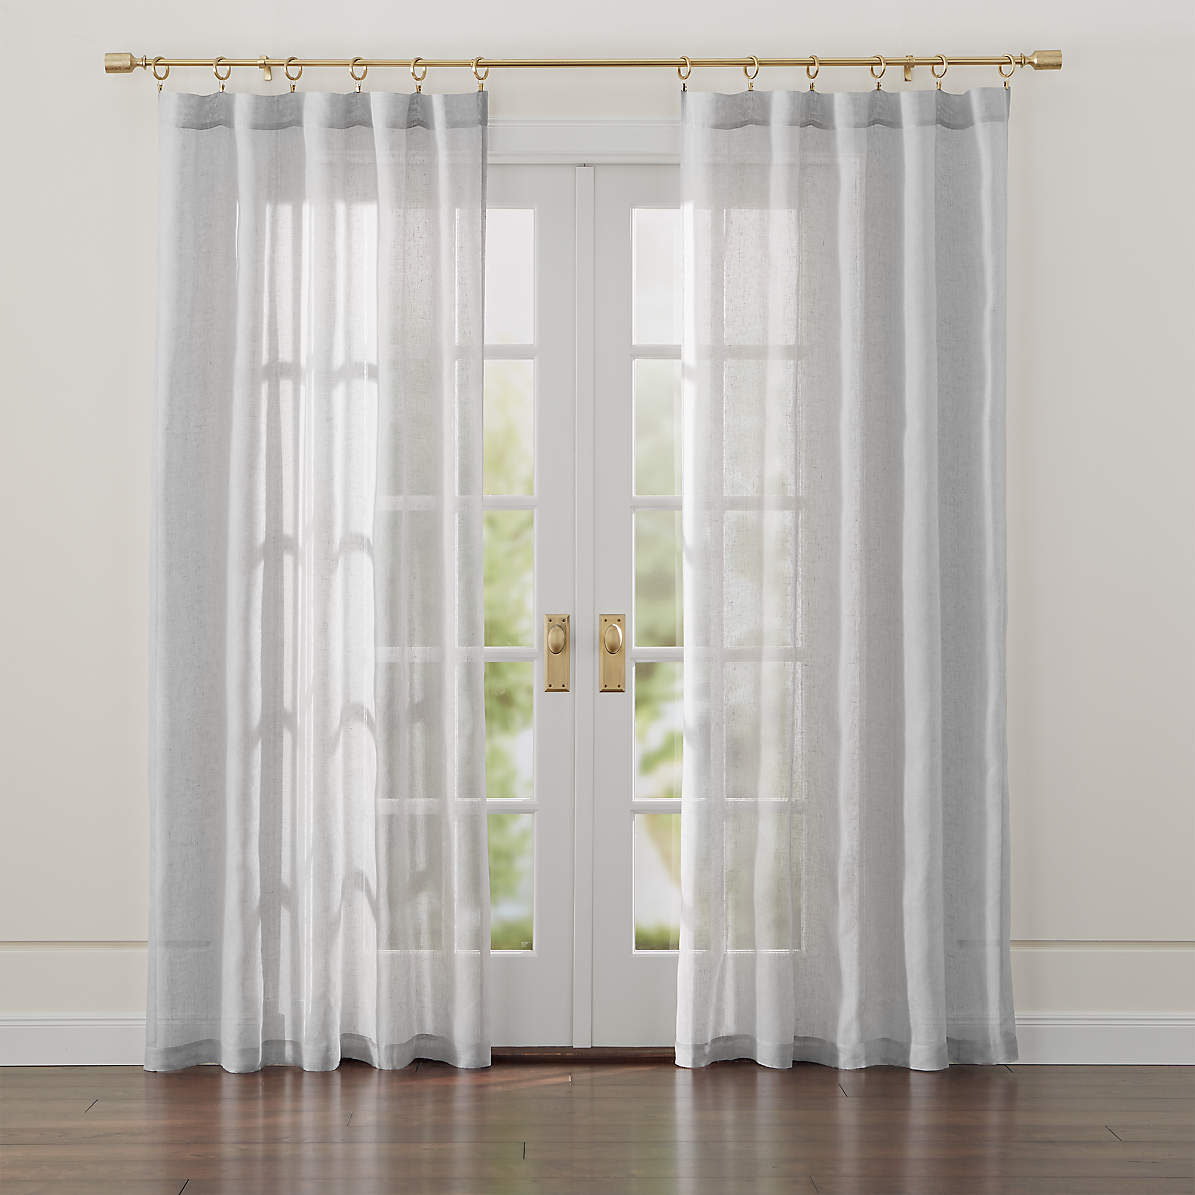 Linen Sheer 52x84 Light Grey Curtain Panel Reviews Crate And Barrel